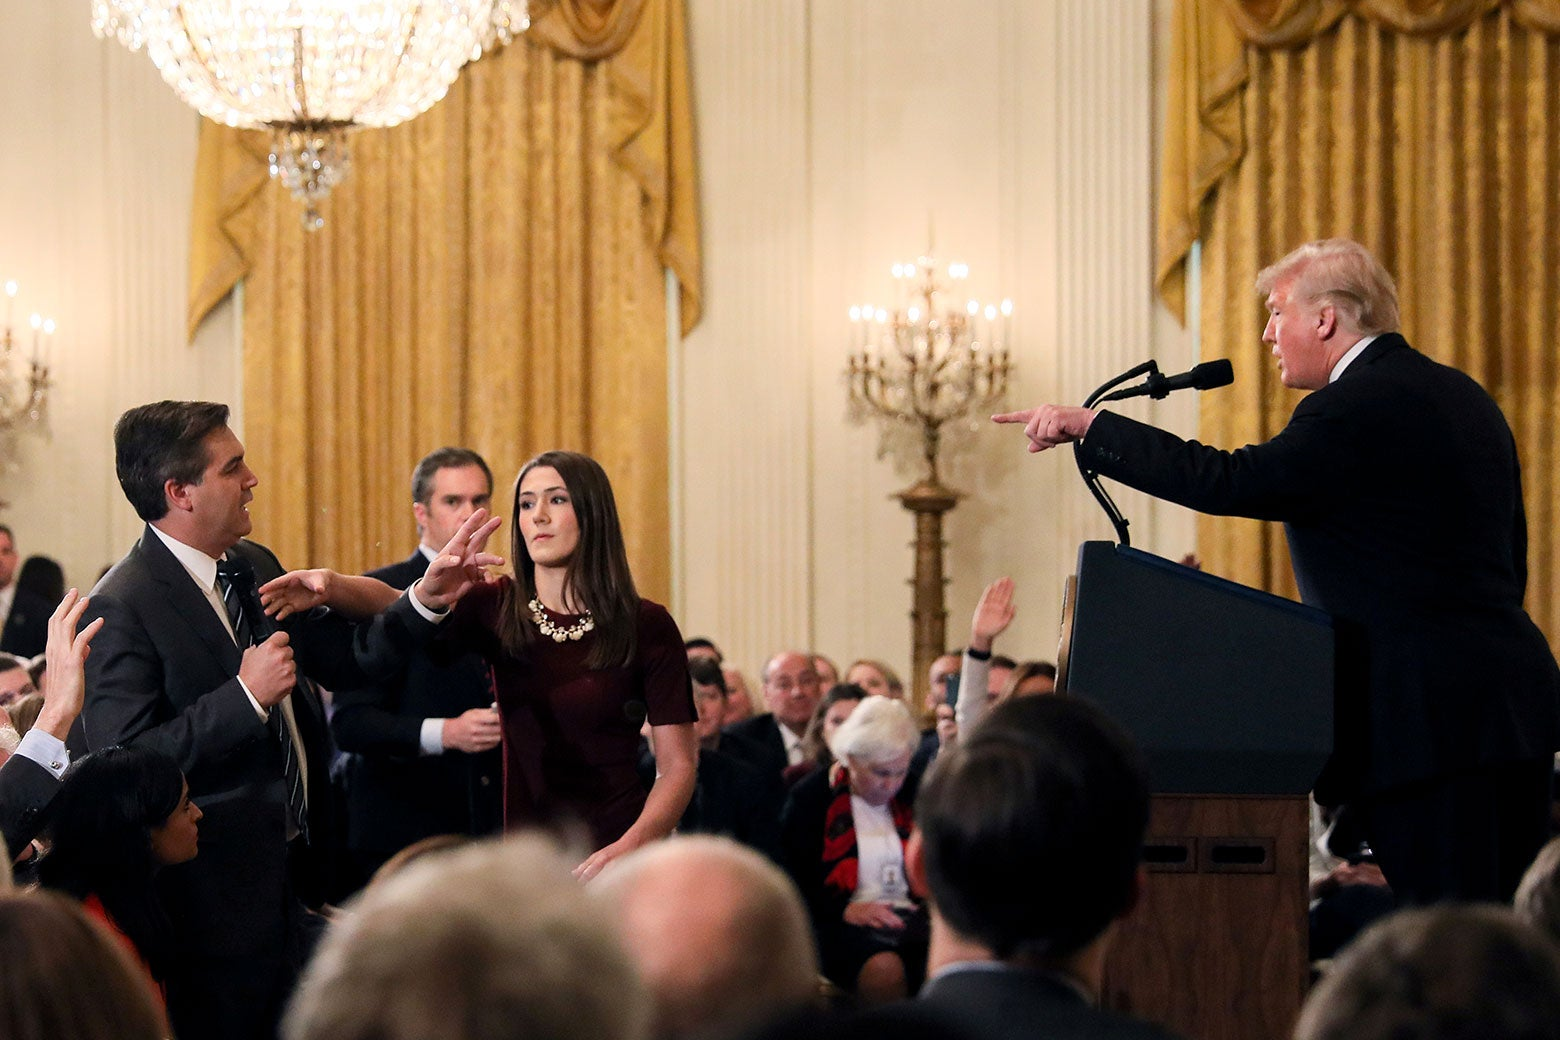 A White House staff member reaches for the microphone held by CNN's Jim Acosta as he questions U.S. President Donald Trump on Wednesday.